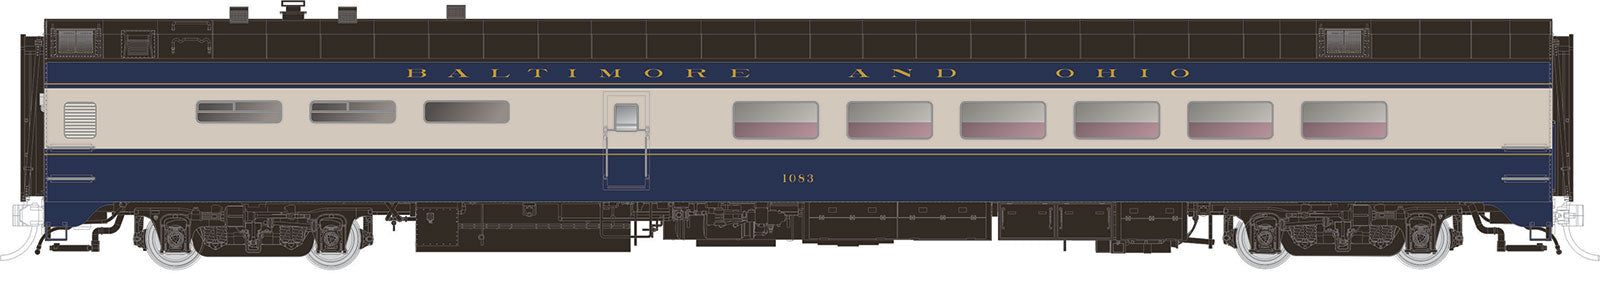 Rapido Trains  Baltimore & Ohio Pullman-Standard Lightweight Dining Car